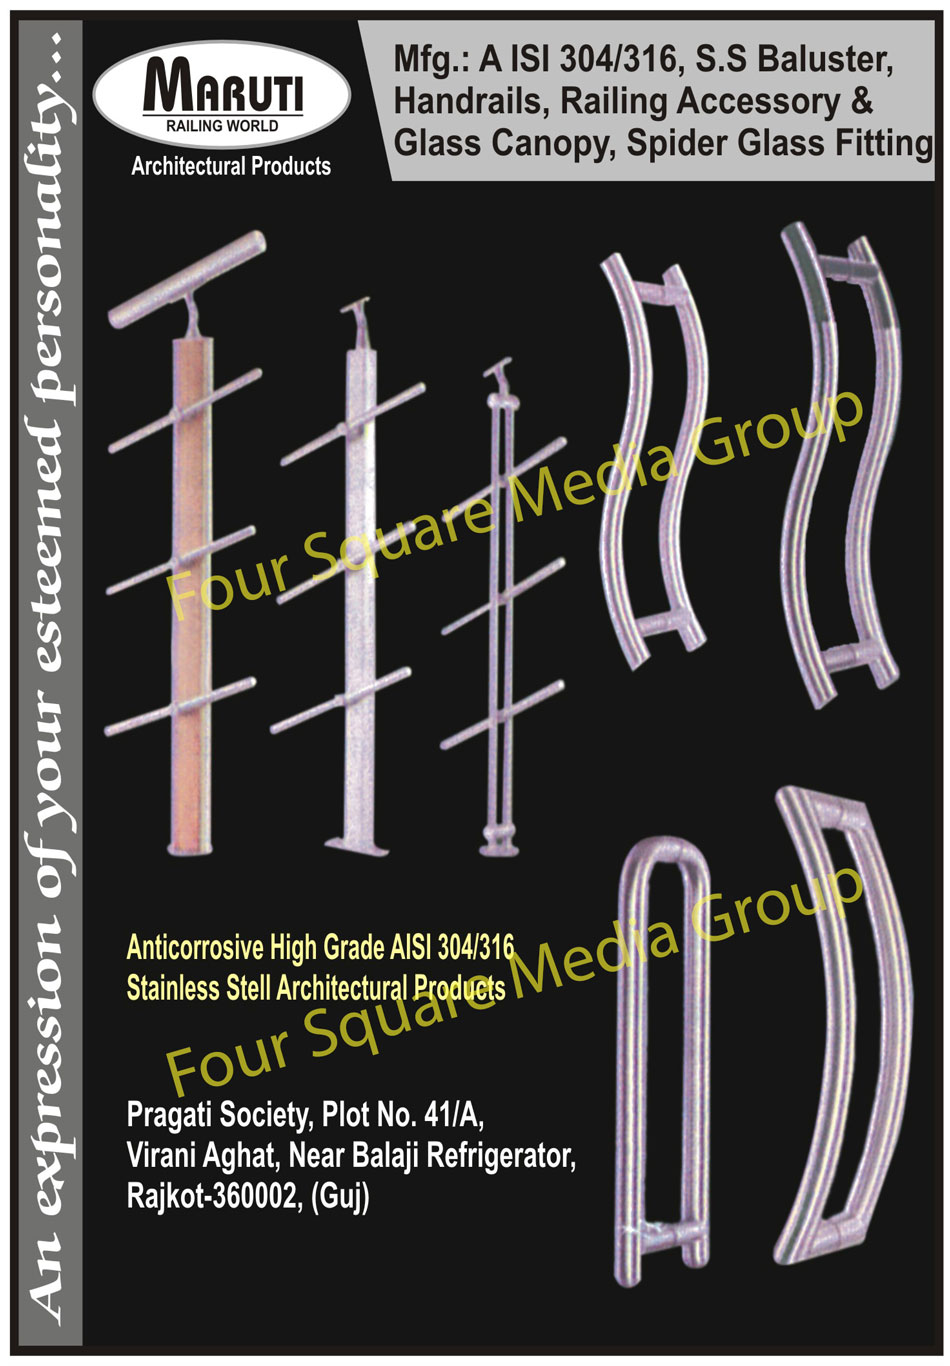 Stainless Steel Balusters, Stainless Steel Handrails, Railing Accessories, Glass Canopy, Spider Glass Fittings